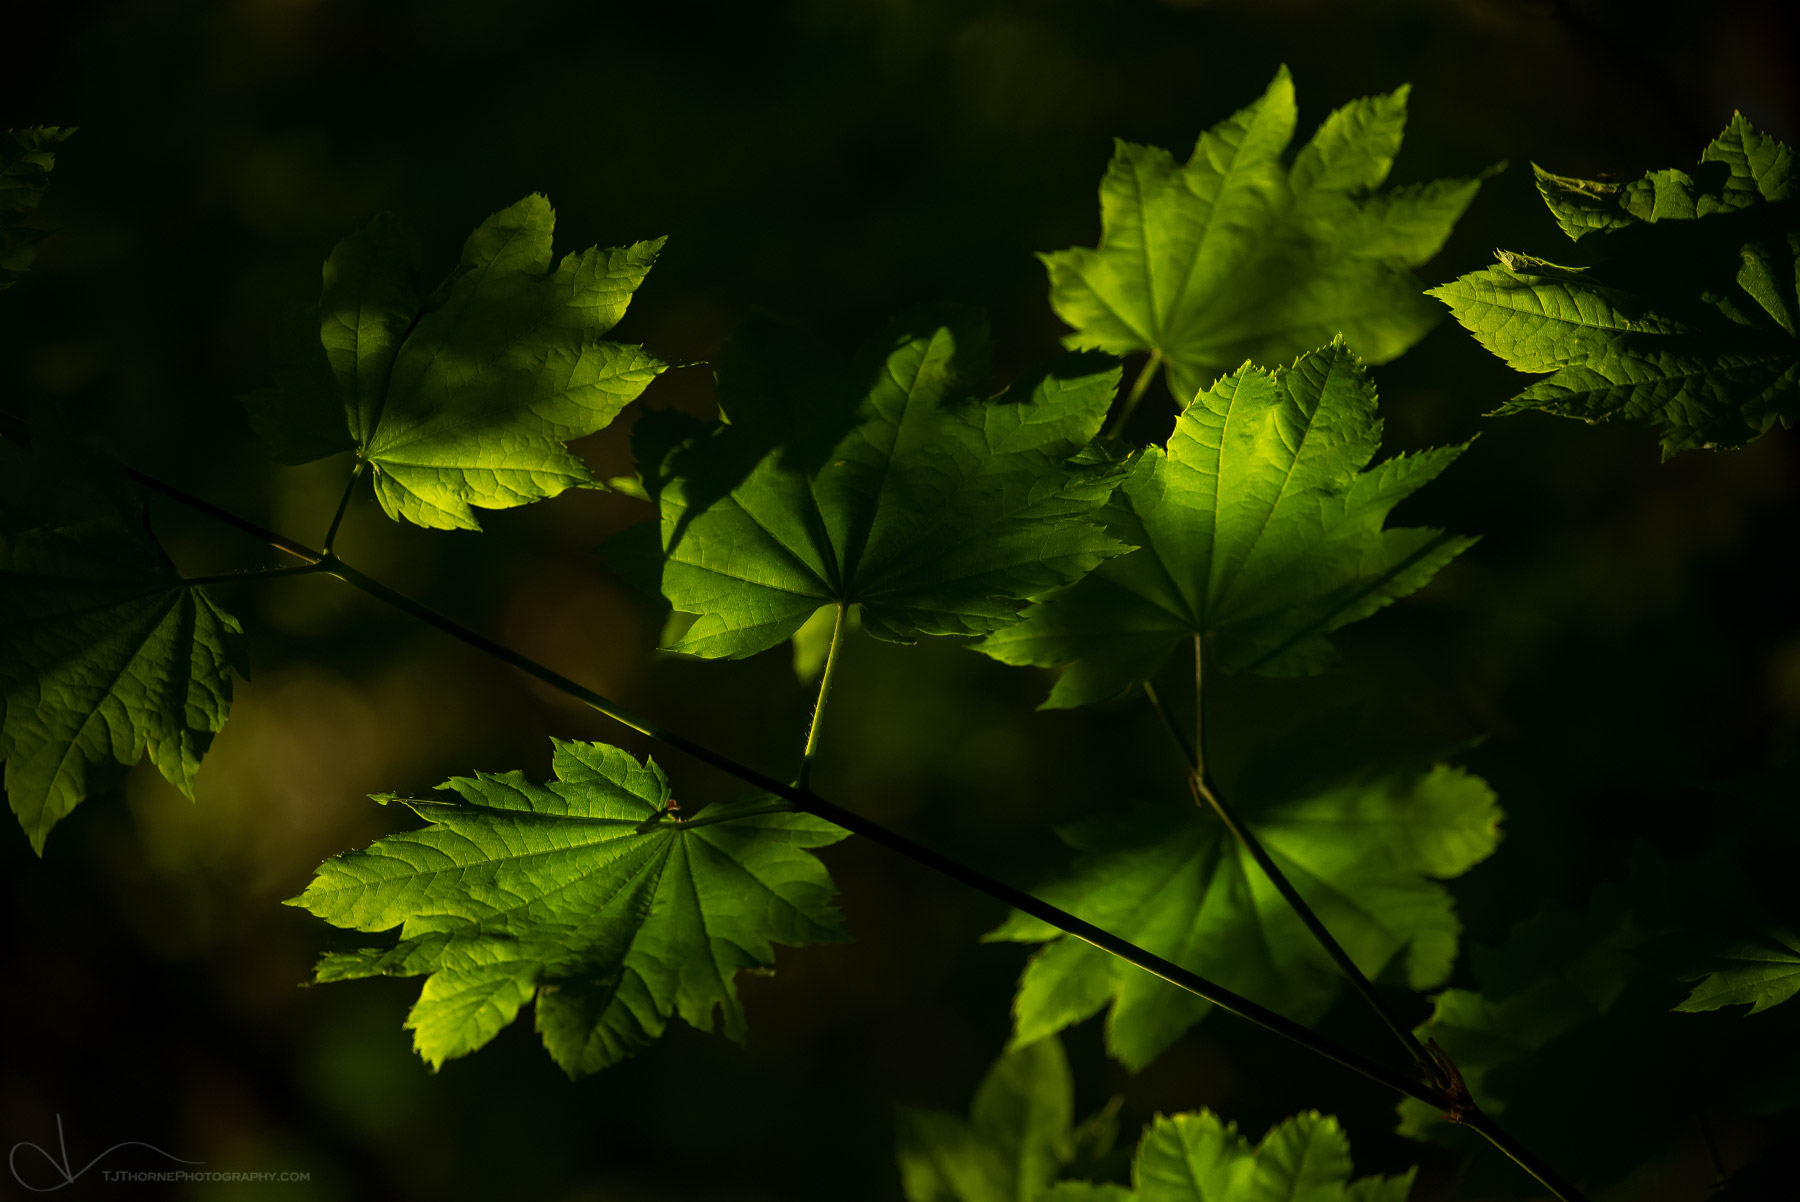 FINE ART LIMITED EDITION OF 100 The last touch of evening light gently gracing maple leaves in Olympic National Park, Washington...